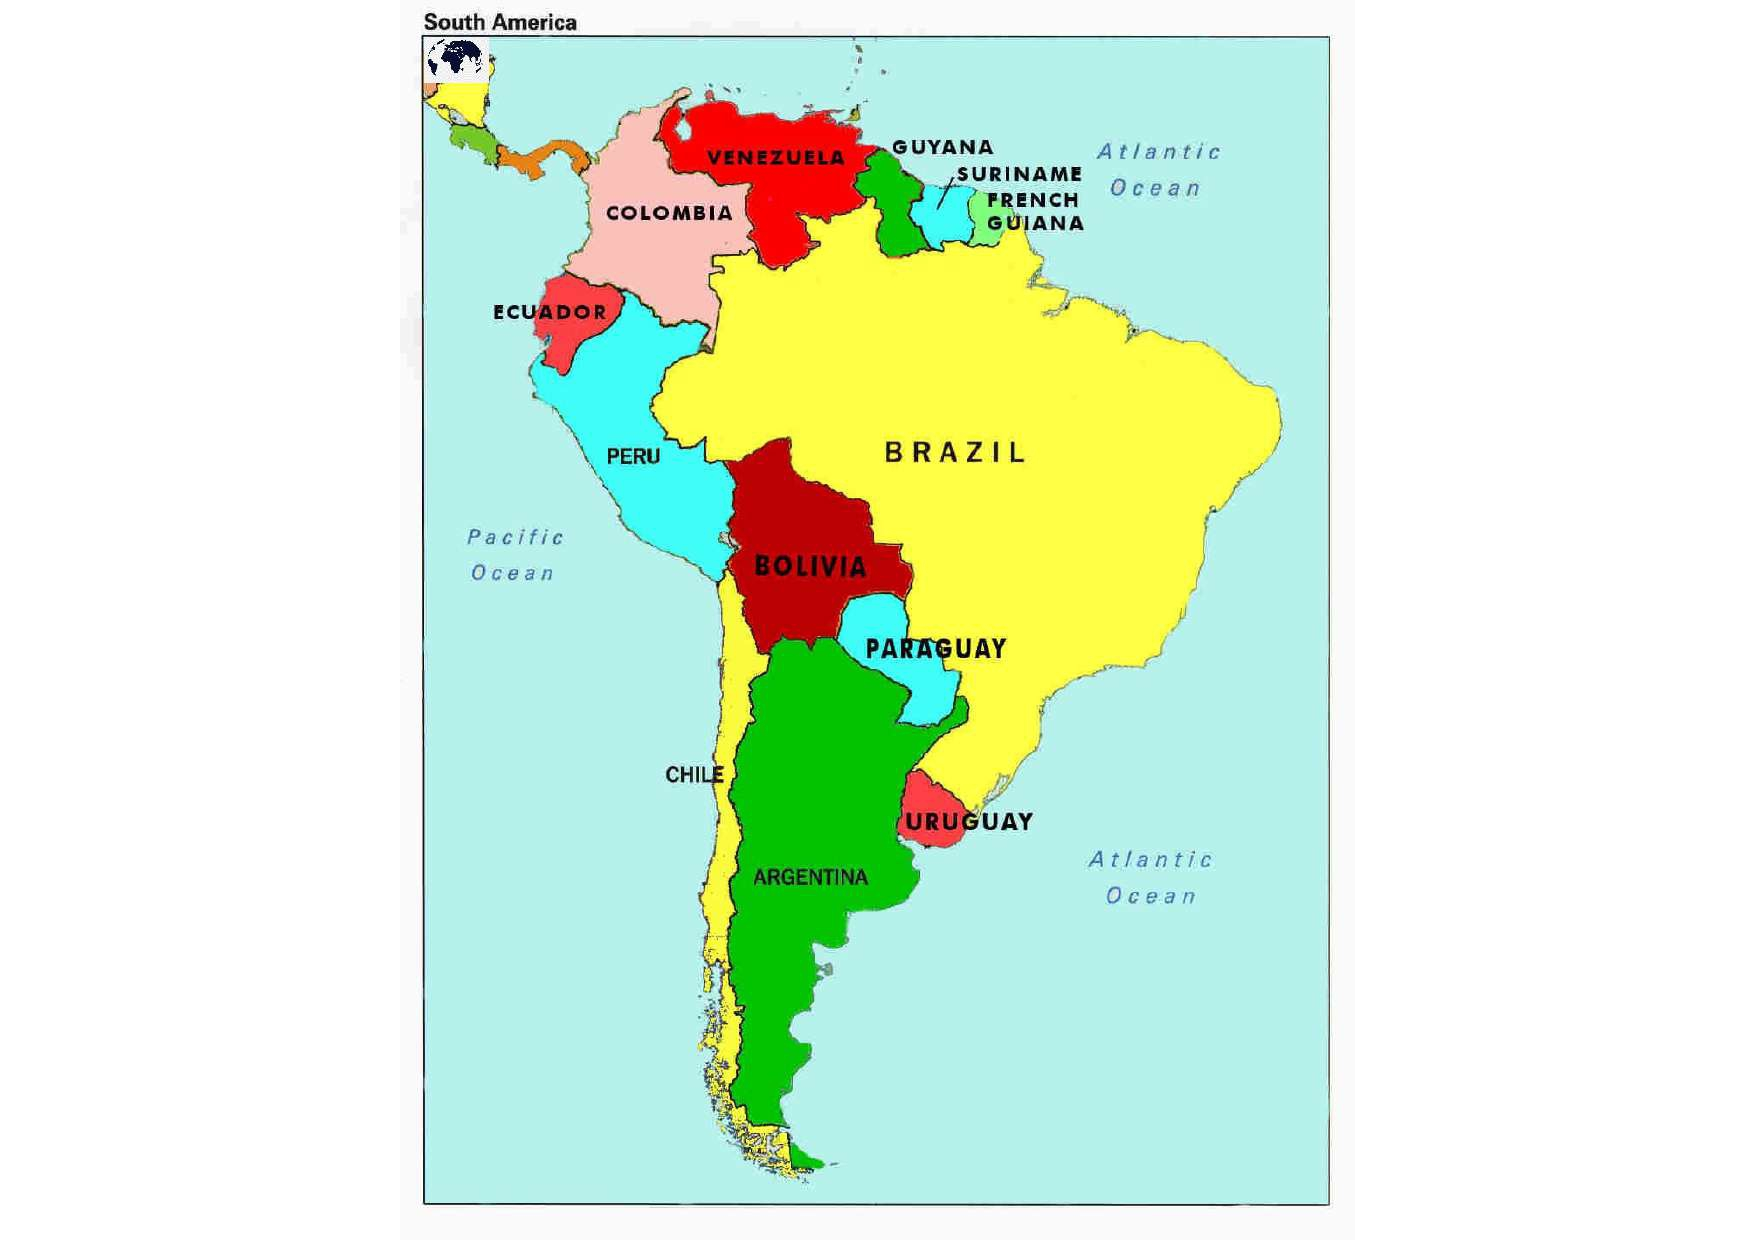 Map of South America with Countries